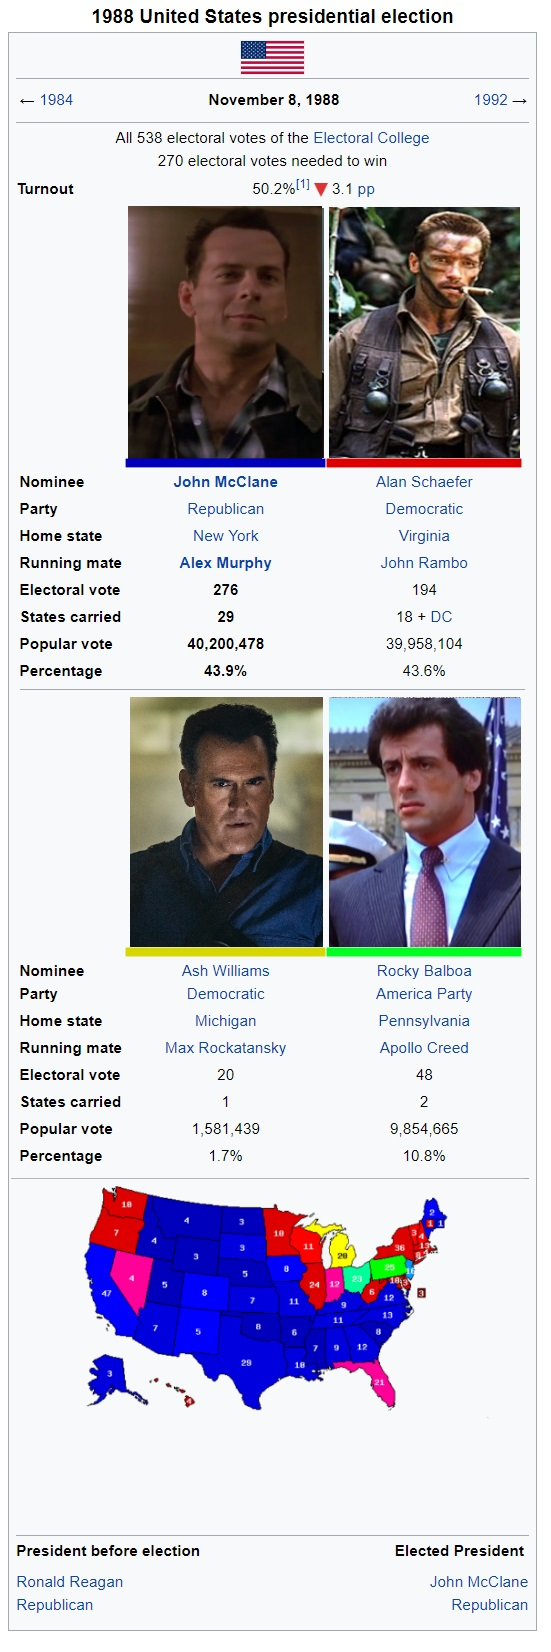 Action Movie Election.jpg